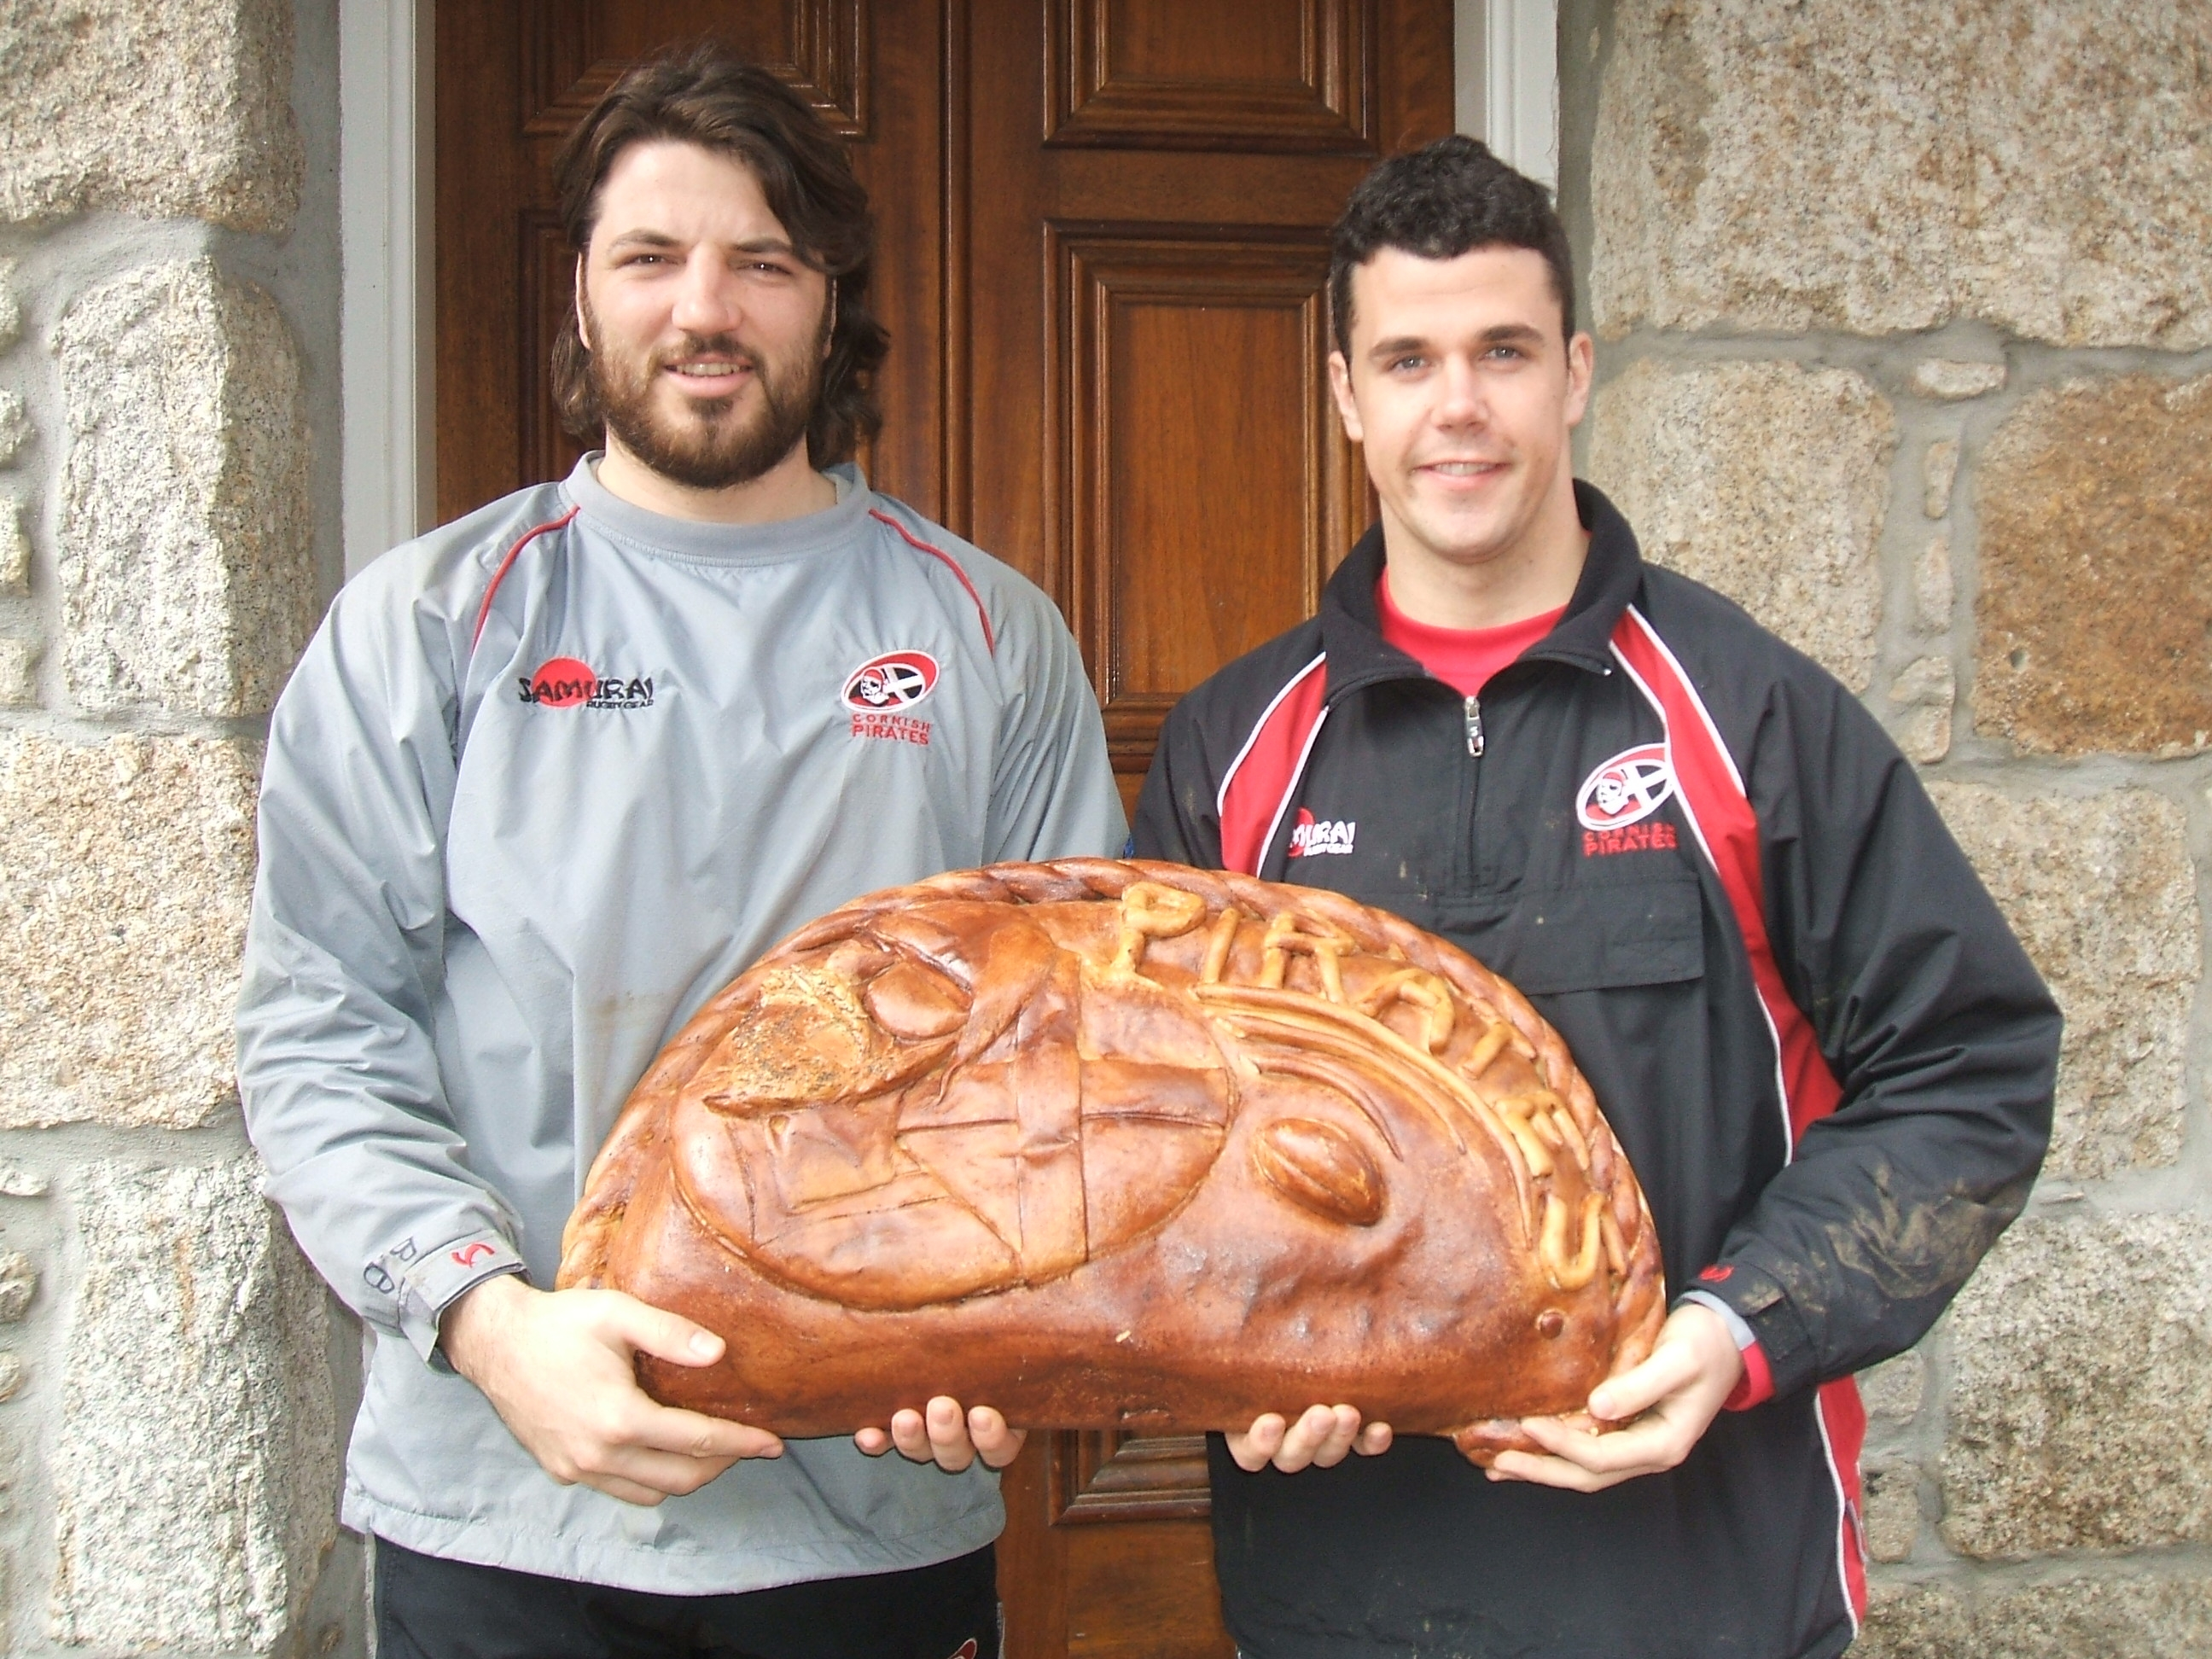 File:Giant Pasty.JPG - Wikimedia Commons